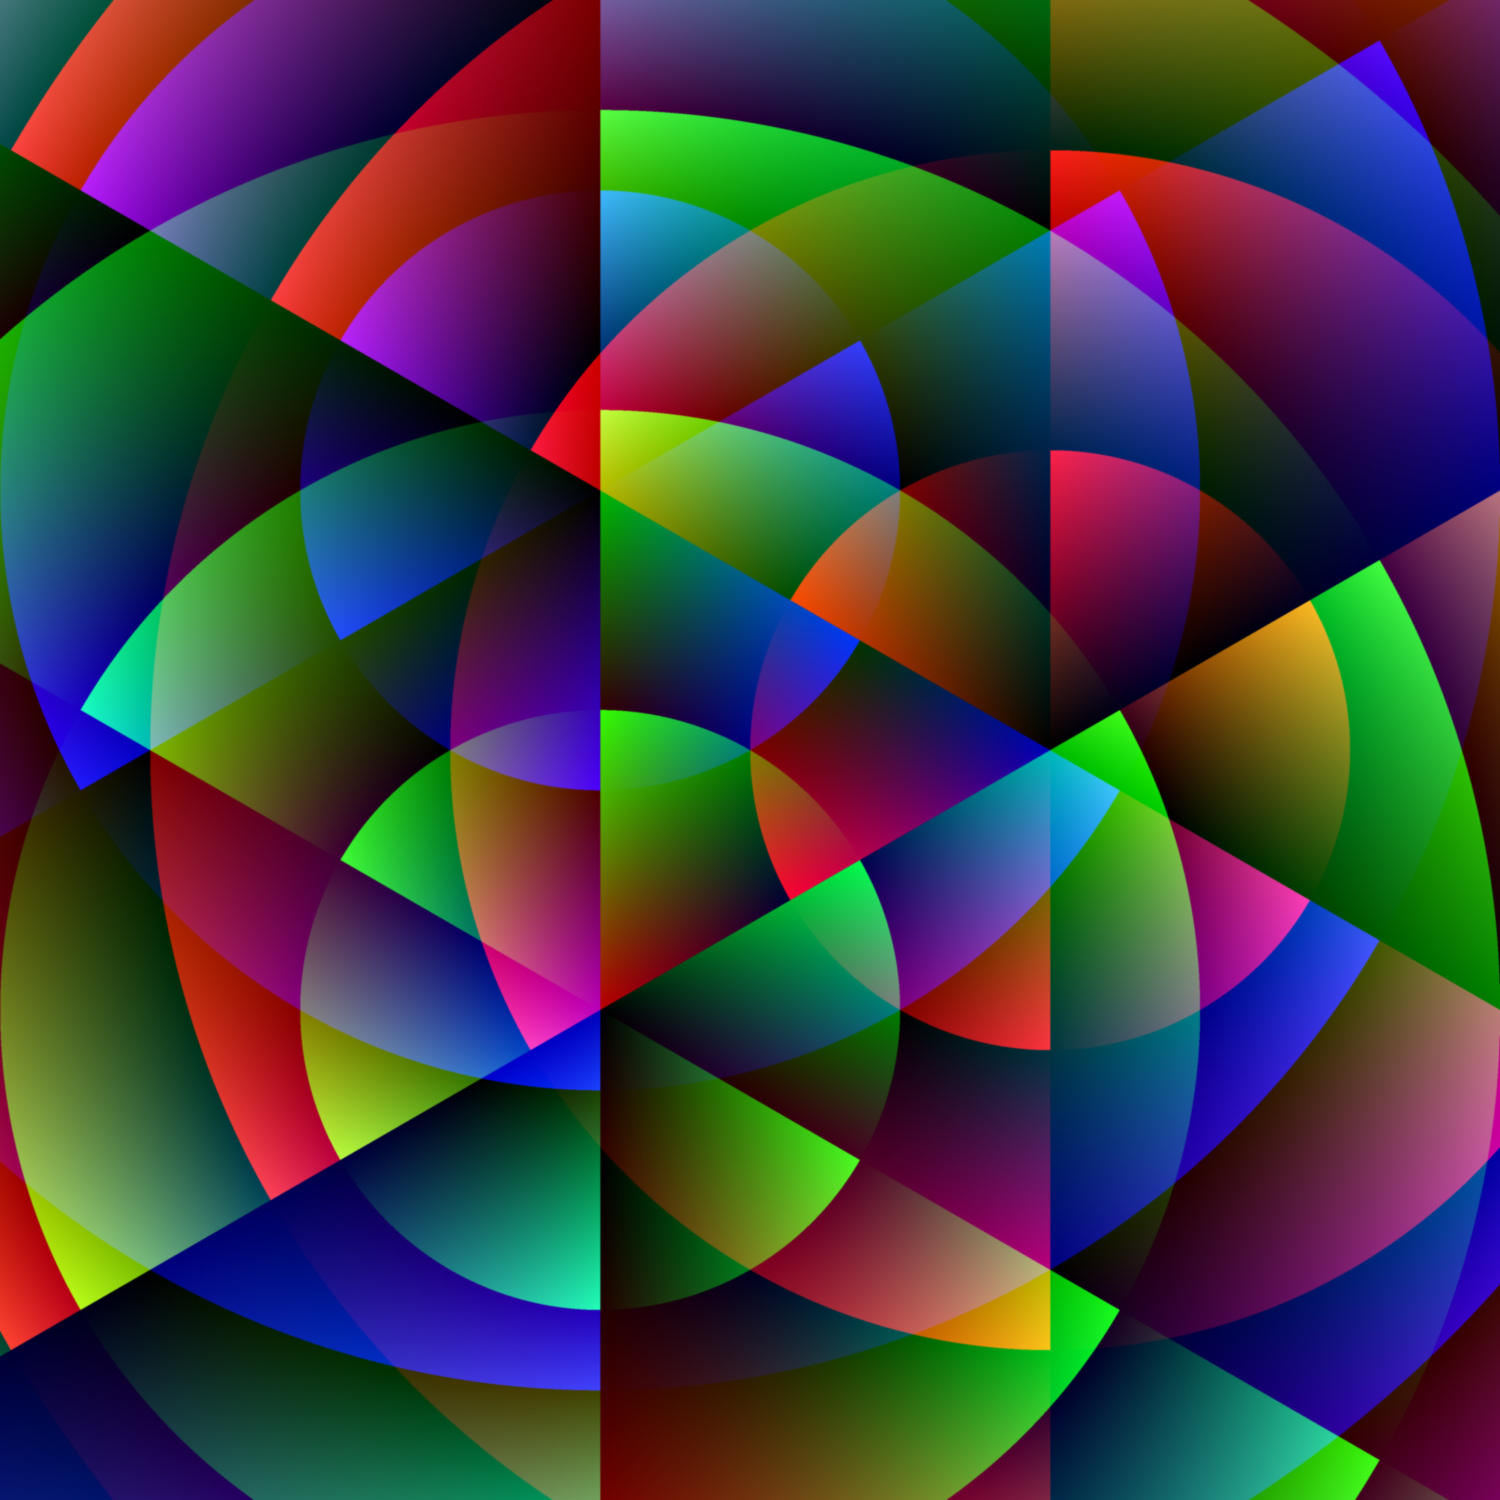 Color art kaleidoscope - Kaleidoscope By Mershell Kaleidoscope By Mershell